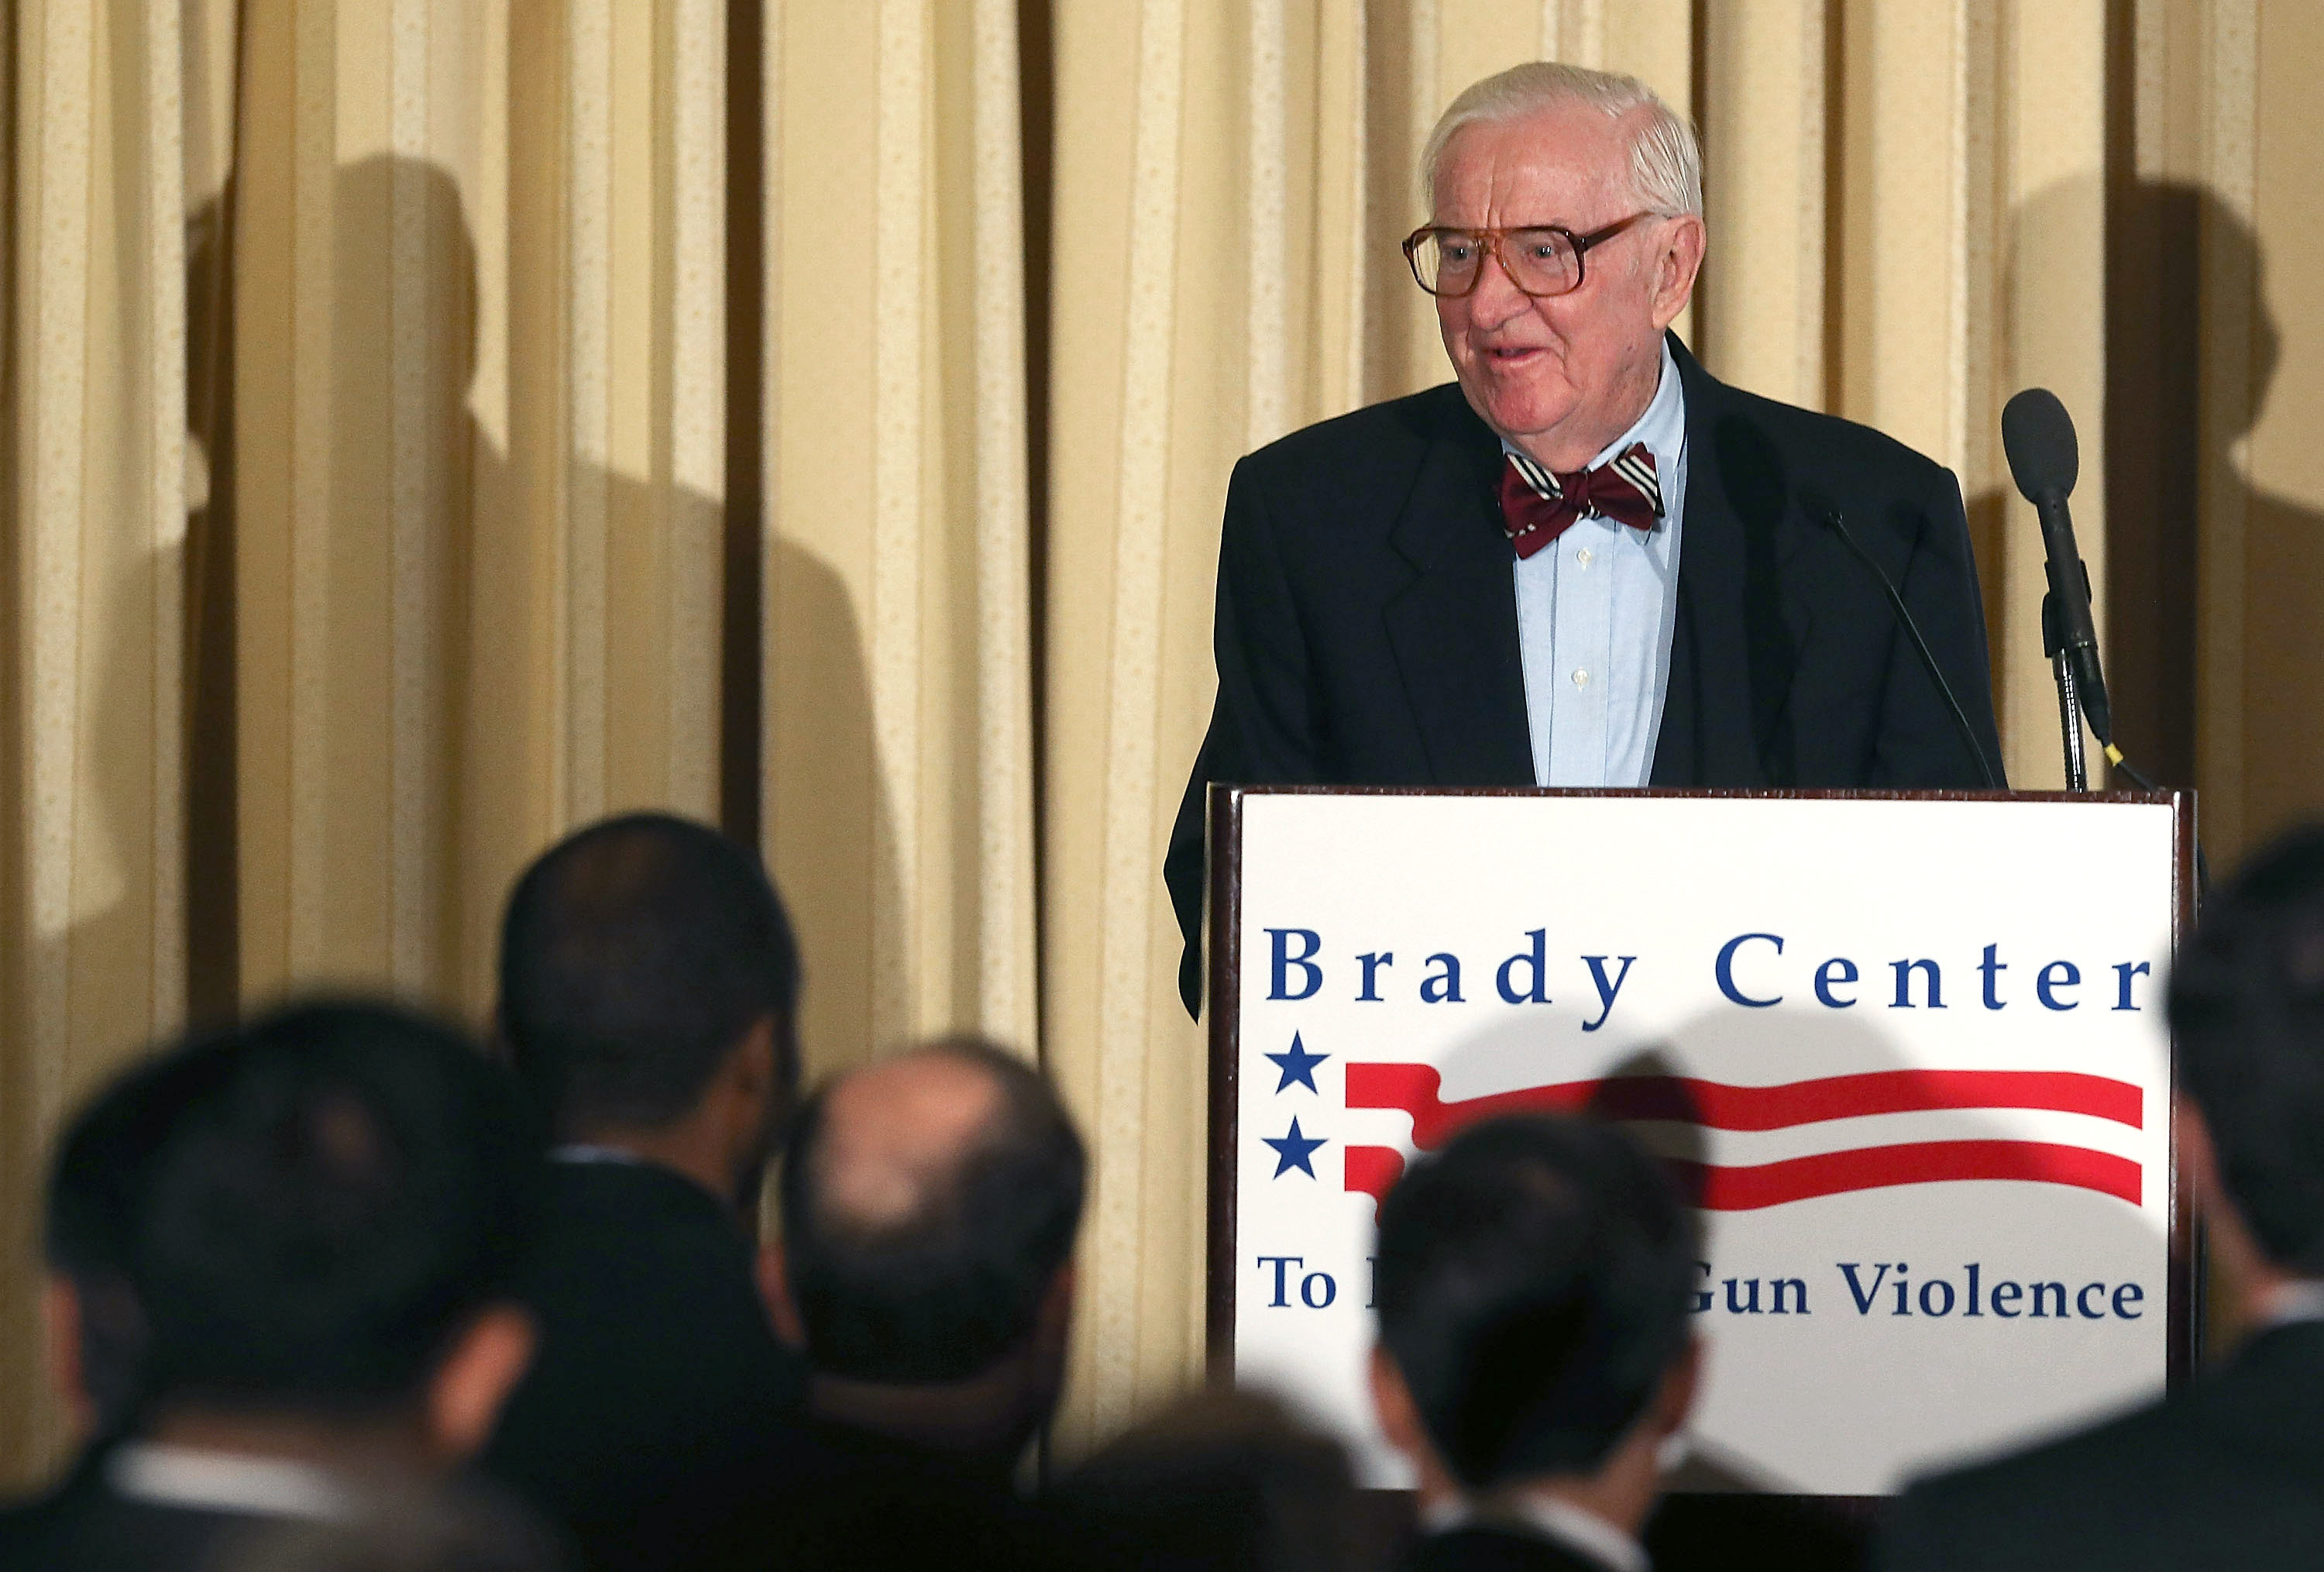 Retired Justice John Paul Stevens speaks about gun laws at a luncheon hosted by the Brady Campaign Center to Prevent Gun Violence on October 15, 2012 in Washington, D.C (Mark Wilson/Getty Images)